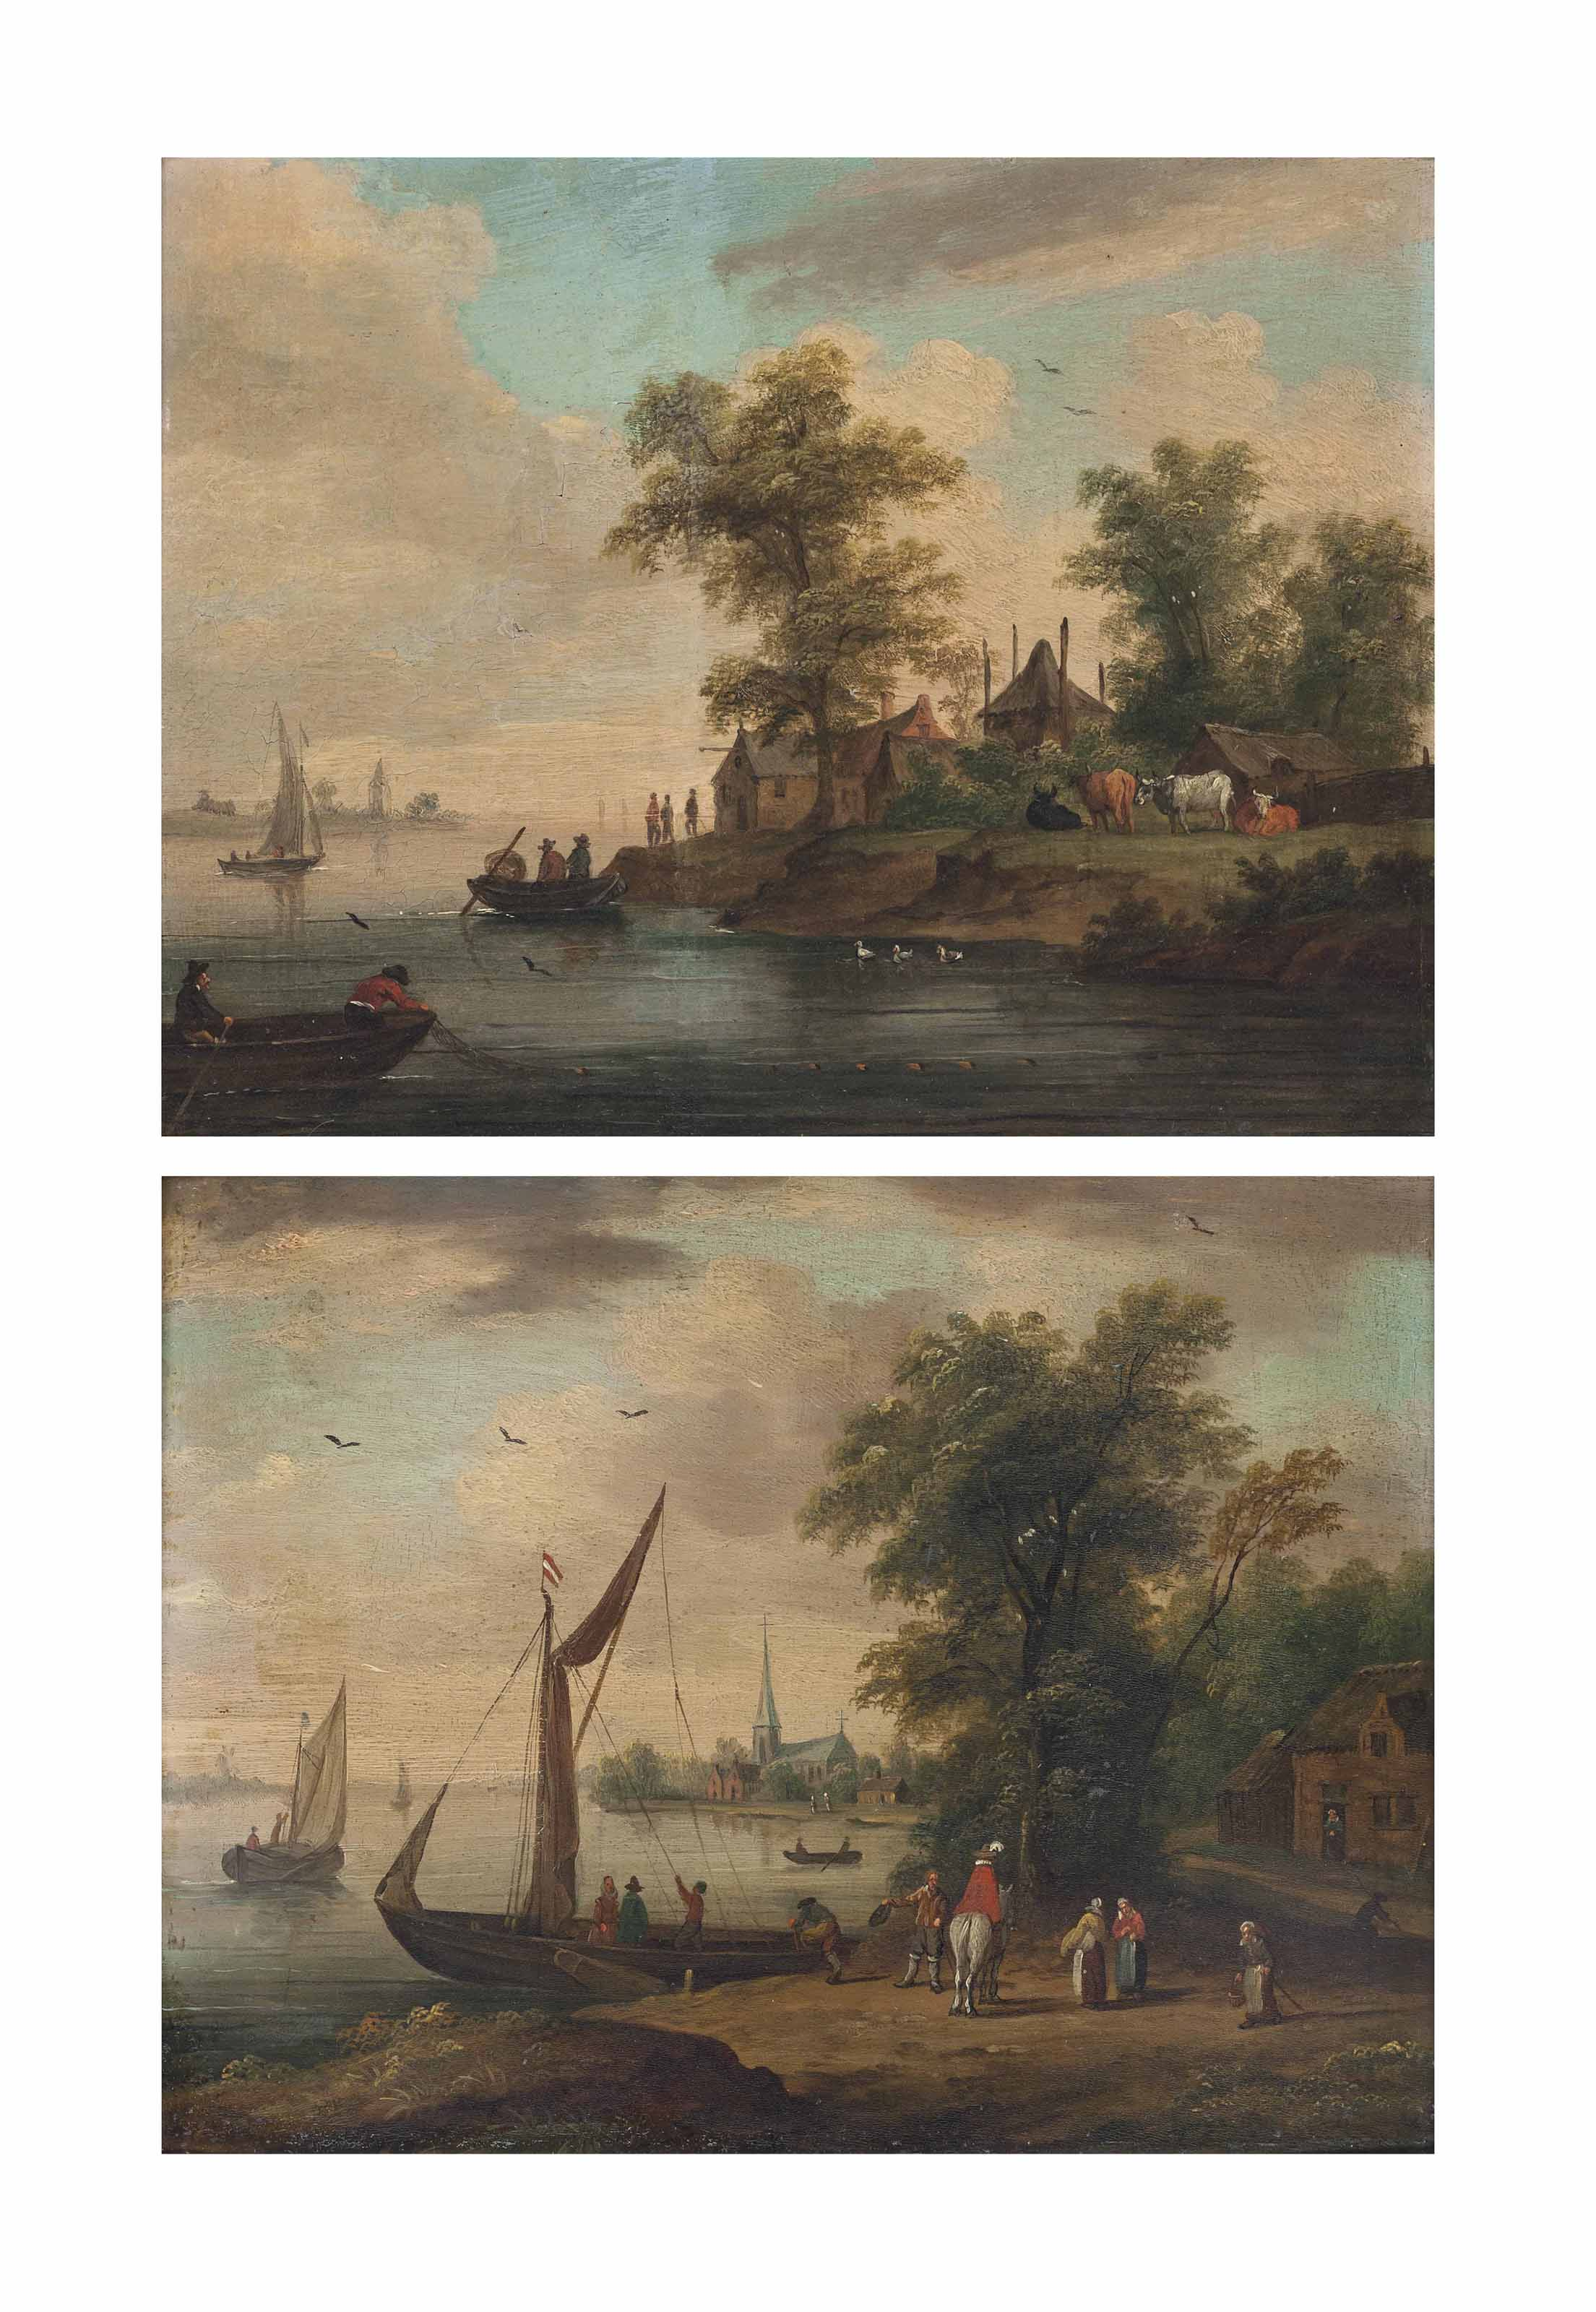 Figures beside a riverbank with a boat preparing to set sail, a village beyond; and An estuary scene with a fishing boat drawing its nets, a village on the shore beyond with cattle grazing